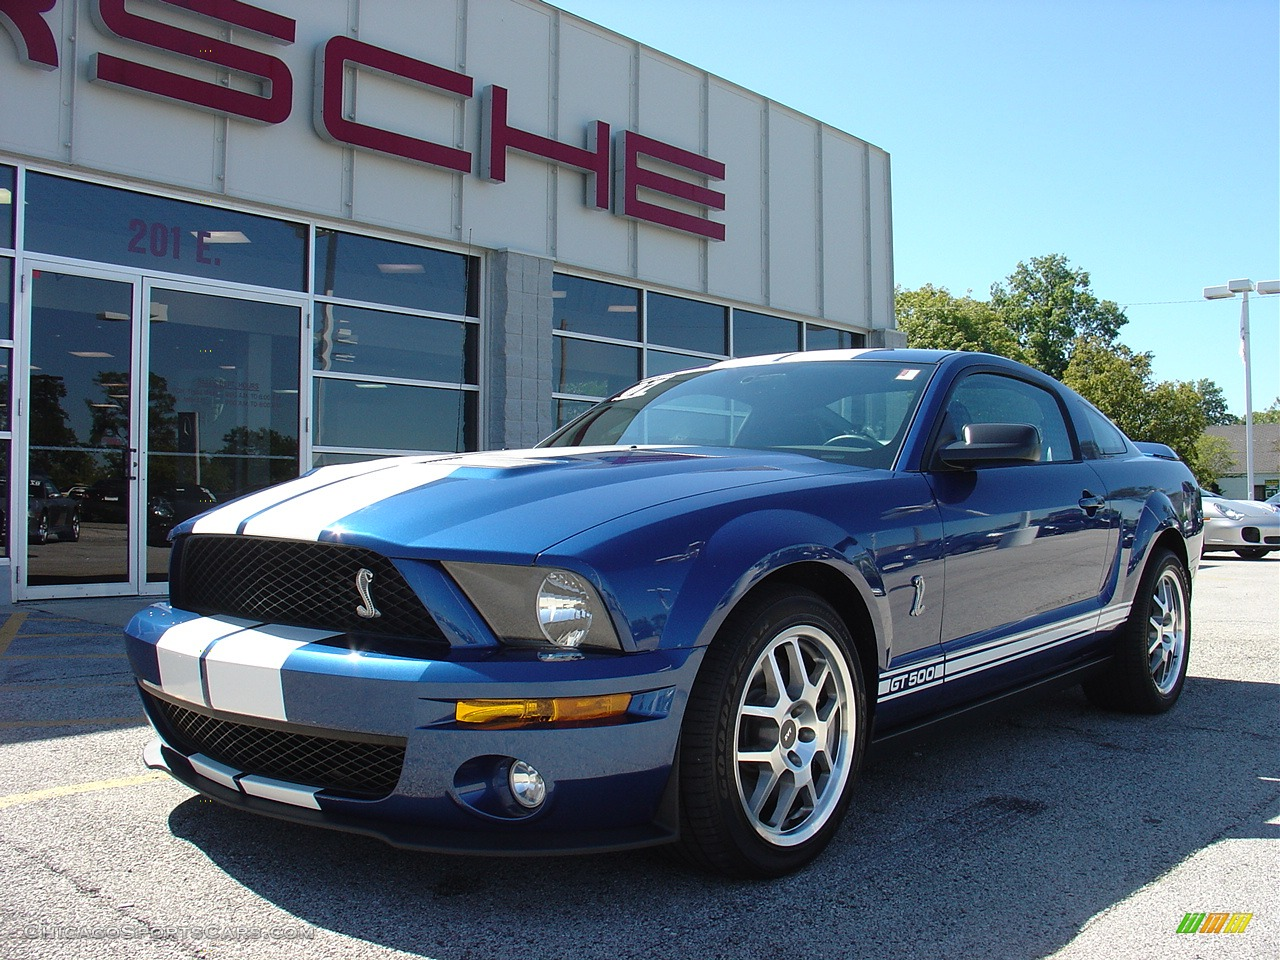 2007 Ford Mustang Shelby Gt500 Coupe In Vista Blue